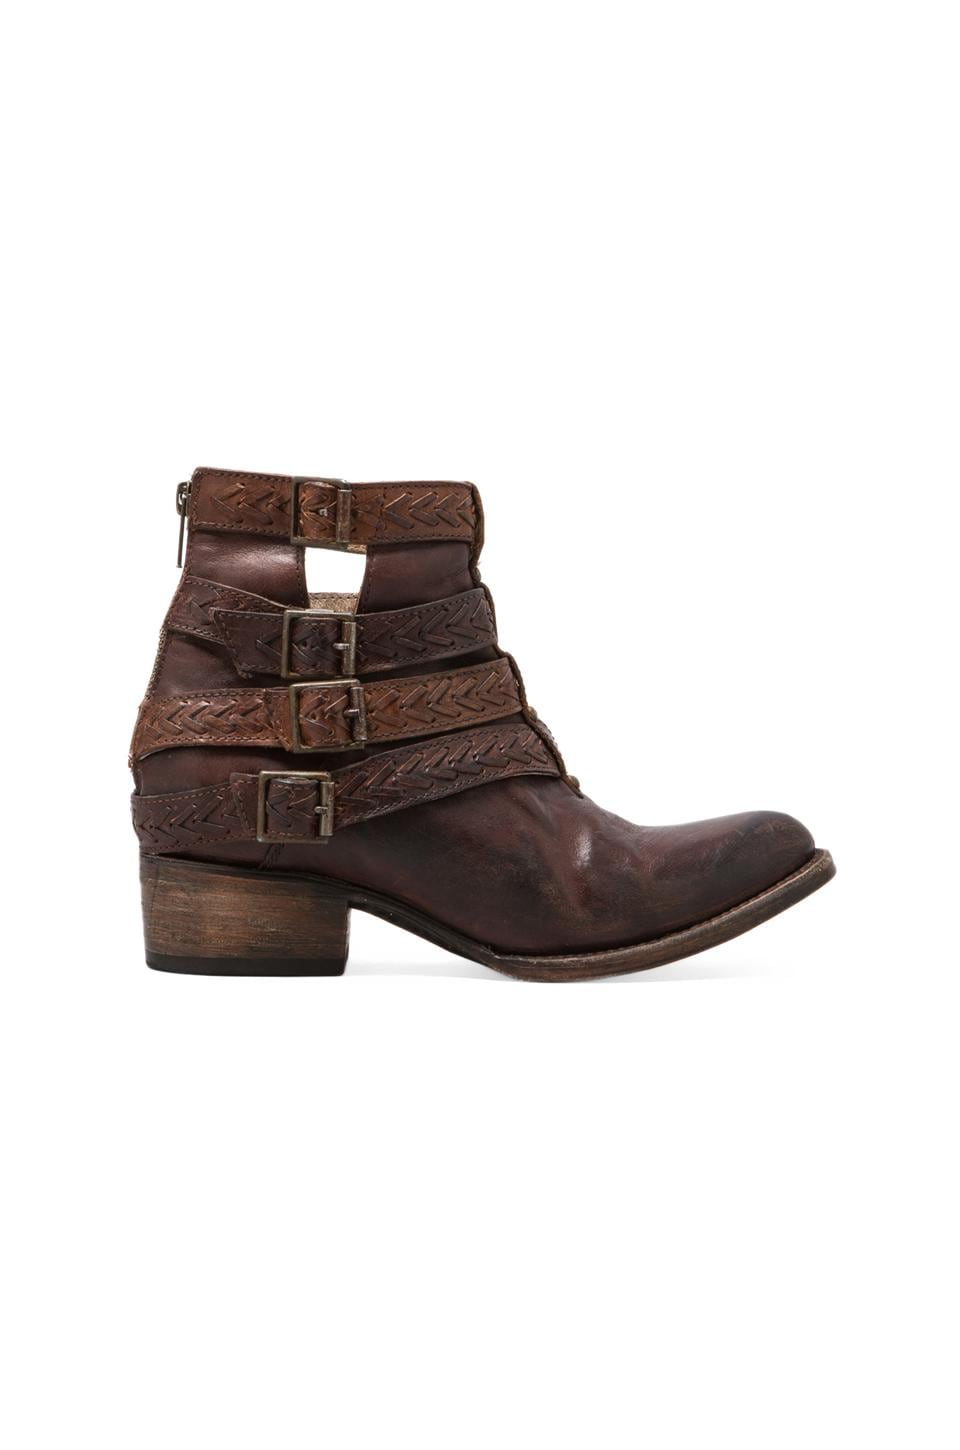 Steven Roper Boot in Brown Leather